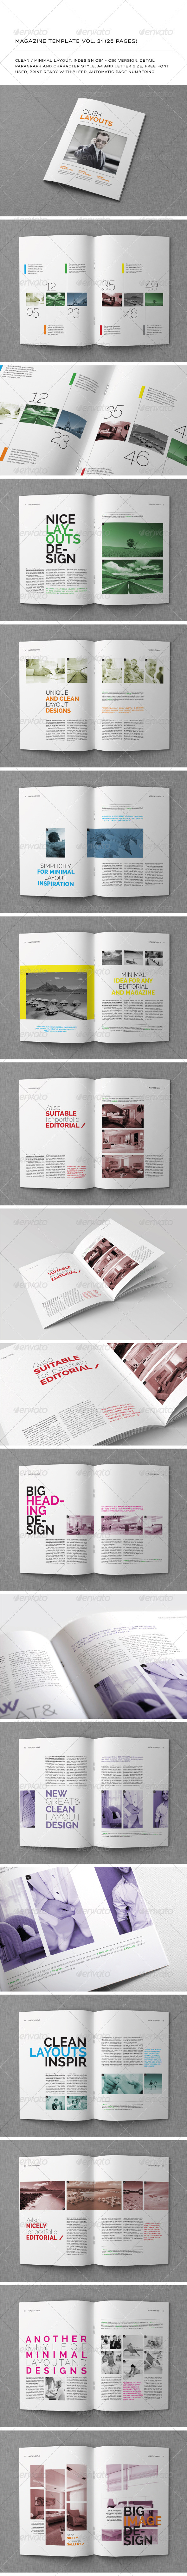 GraphicRiver A4 Letter 26 Pages Mgz Vol 21 5798155